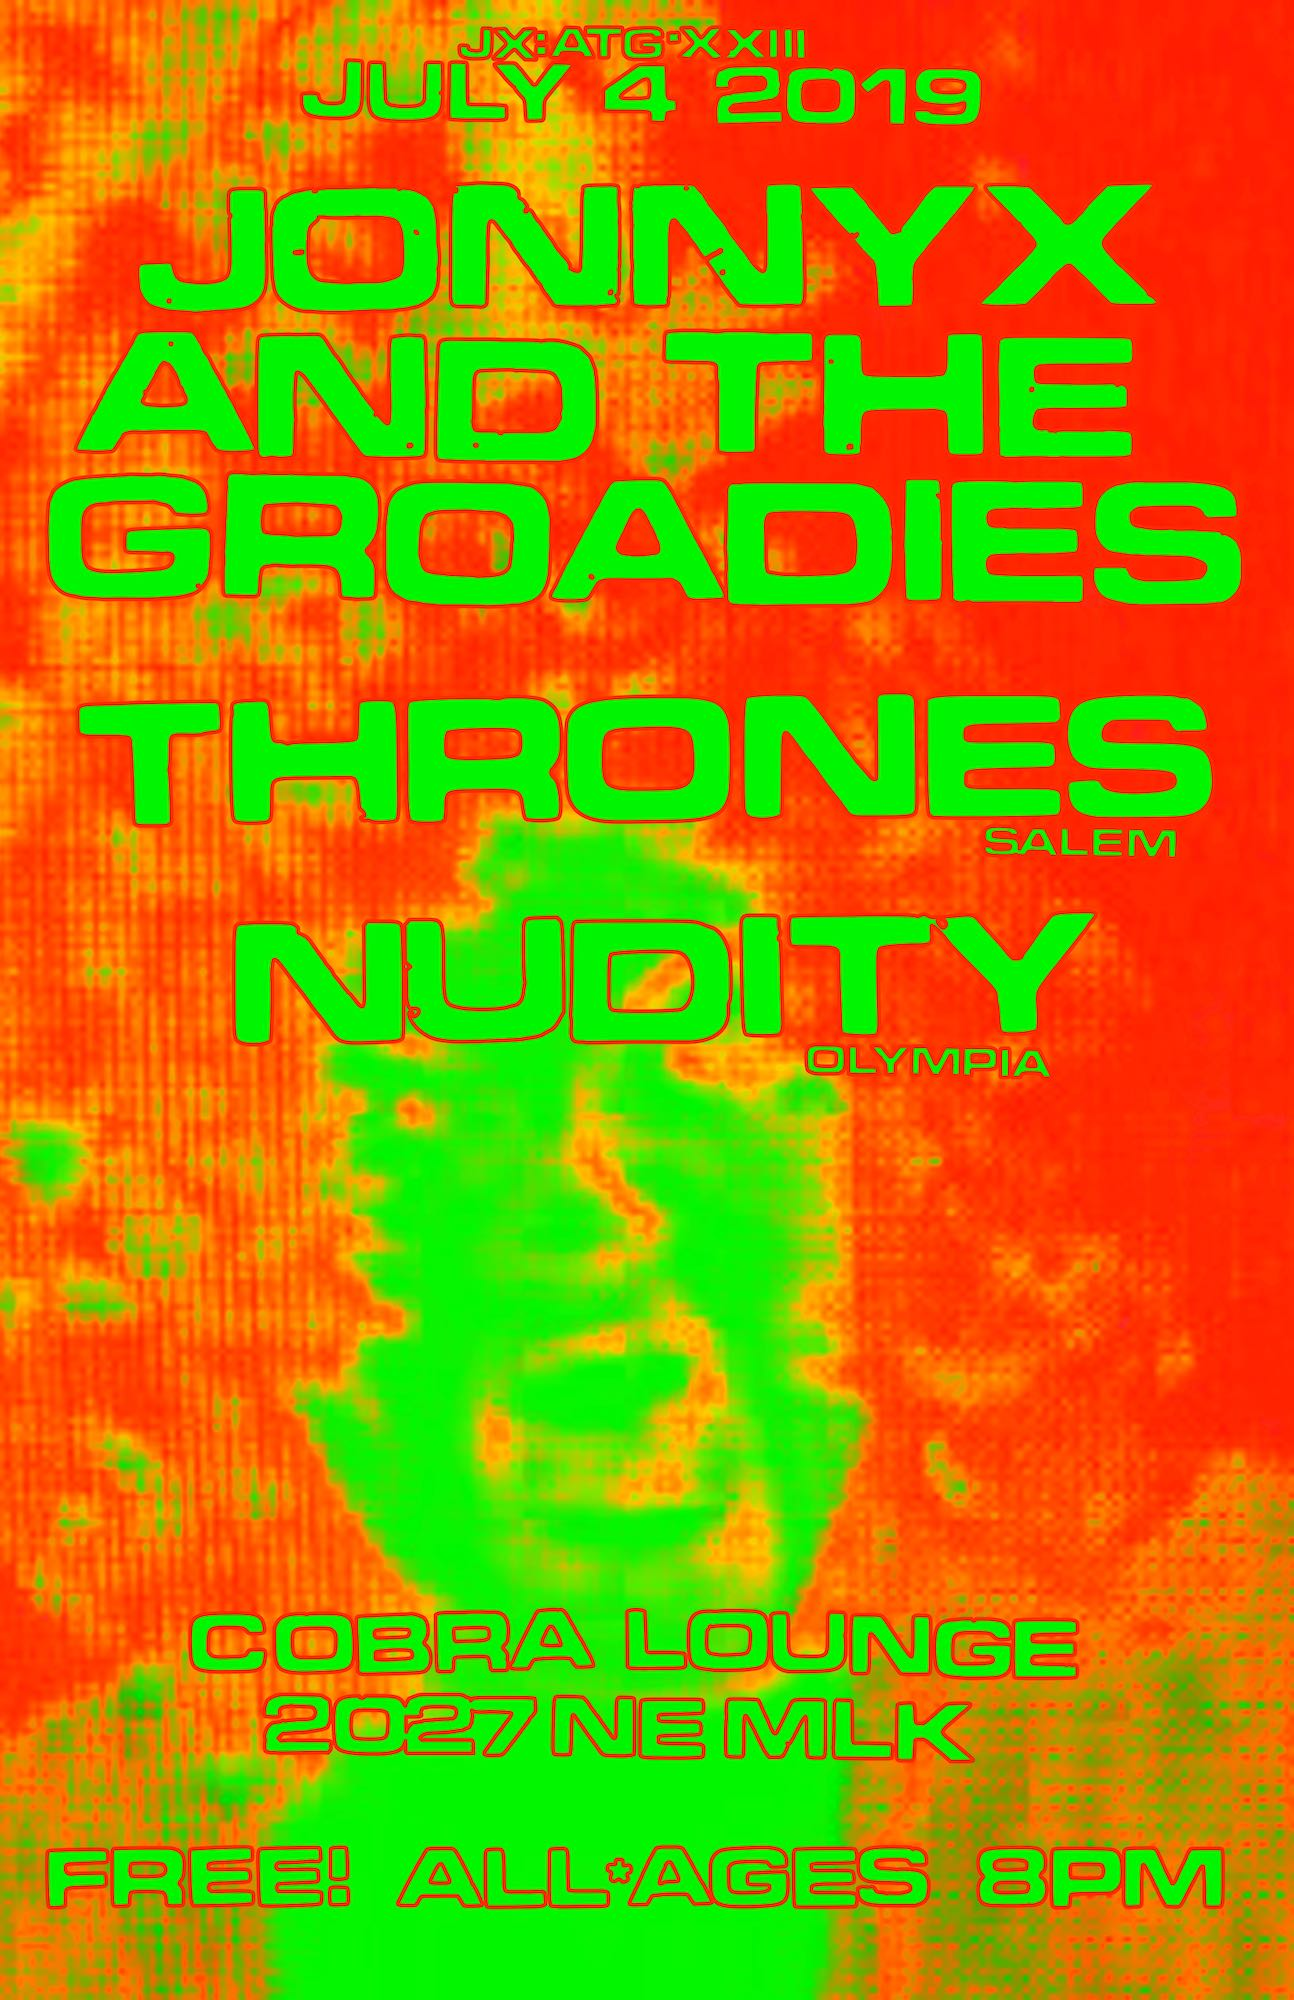 A flyer for the JonnyX and the Groadies 23rd birthday party on July 4th 2019. Also appearing will be special guests THRONES from Salem and Nudity from Olympia. The event is happening at the Cobra Lounge at 2027 Northeast Martin Luther King Jr Boulevard in Portland Oregon. The event is free and doors open at 8pm. Guests of all ages are welcome.